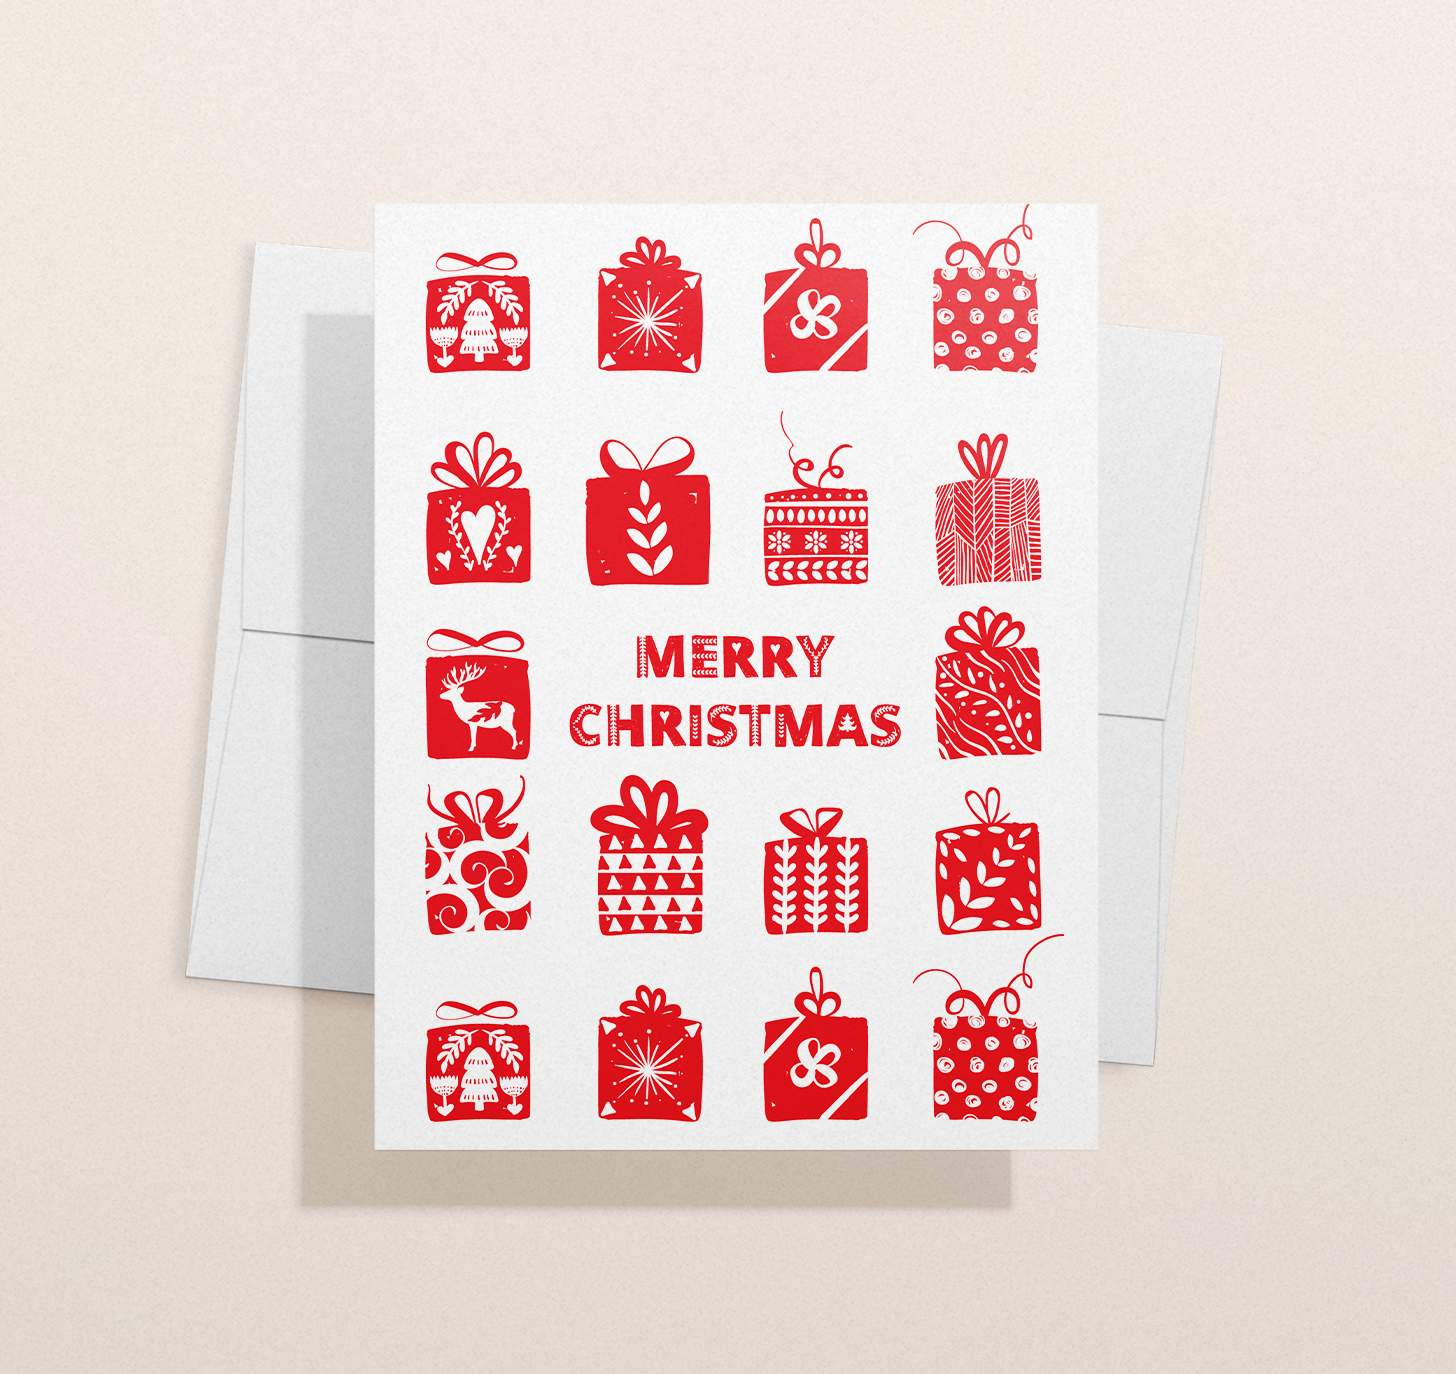 Red and white Merry Christmas with presents designs with envelope